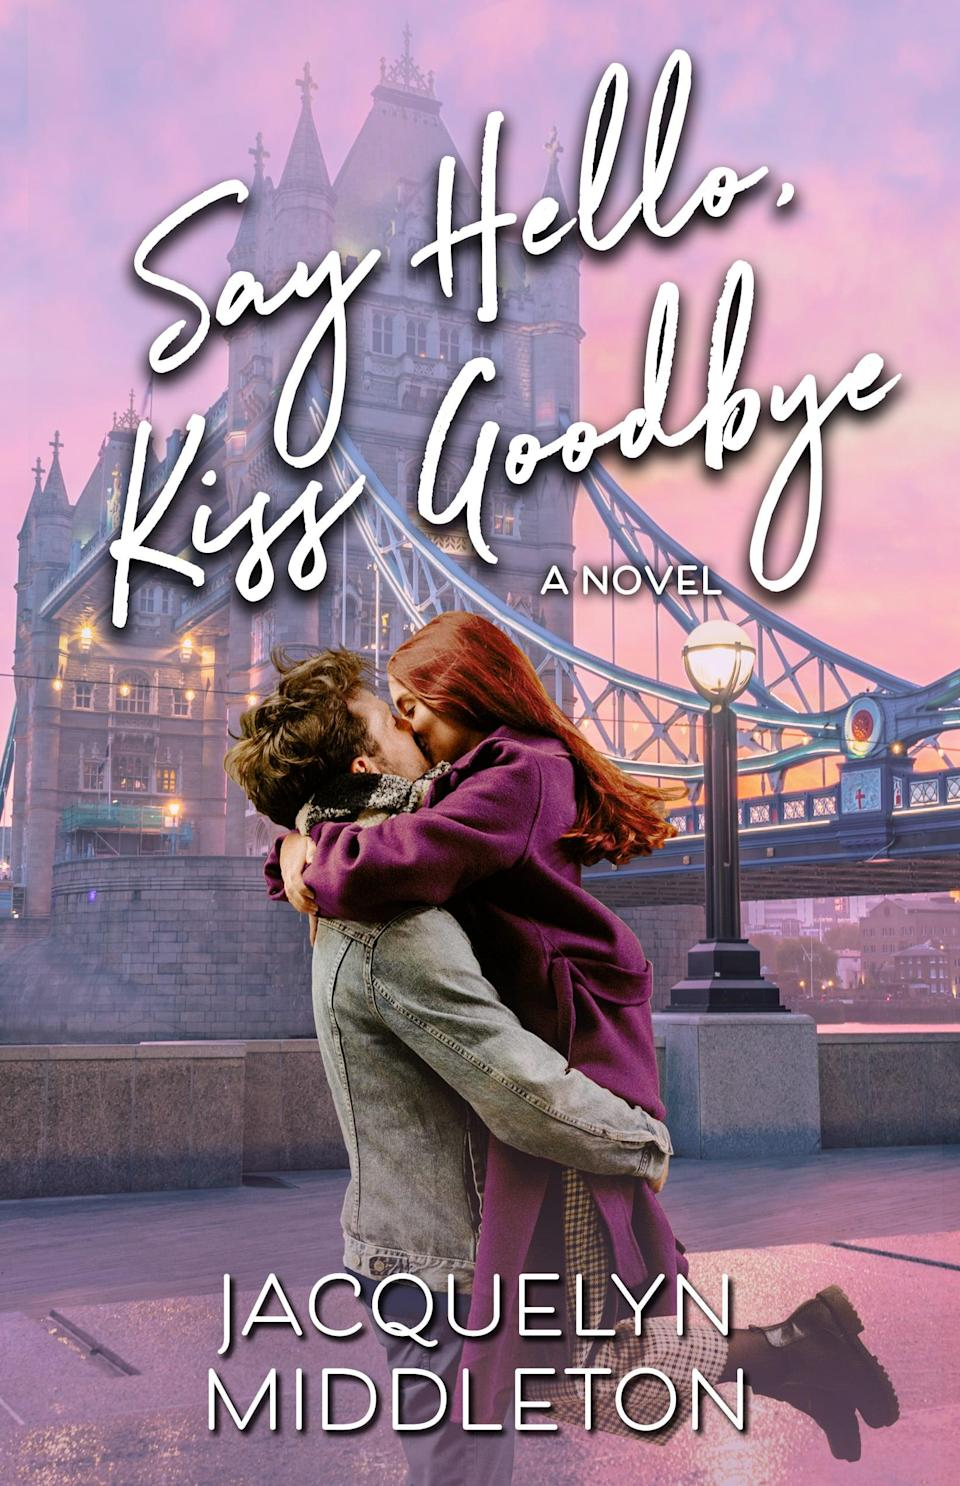 <p>Jacquelyn Middleton's <span><strong>Say Hello, Kiss Goodbye</strong></span> is a lovely story about never giving up on love. Recent divorcee Leia moves to London for a fresh start, which she imagines will include plenty of no strings attached flings. What she doesn't count on is her wealthy and handsome hookup Tarquin being ready for something serious, or his belief that they might just be perfect for each other. </p> <p><em>Out Nov. 26</em></p>